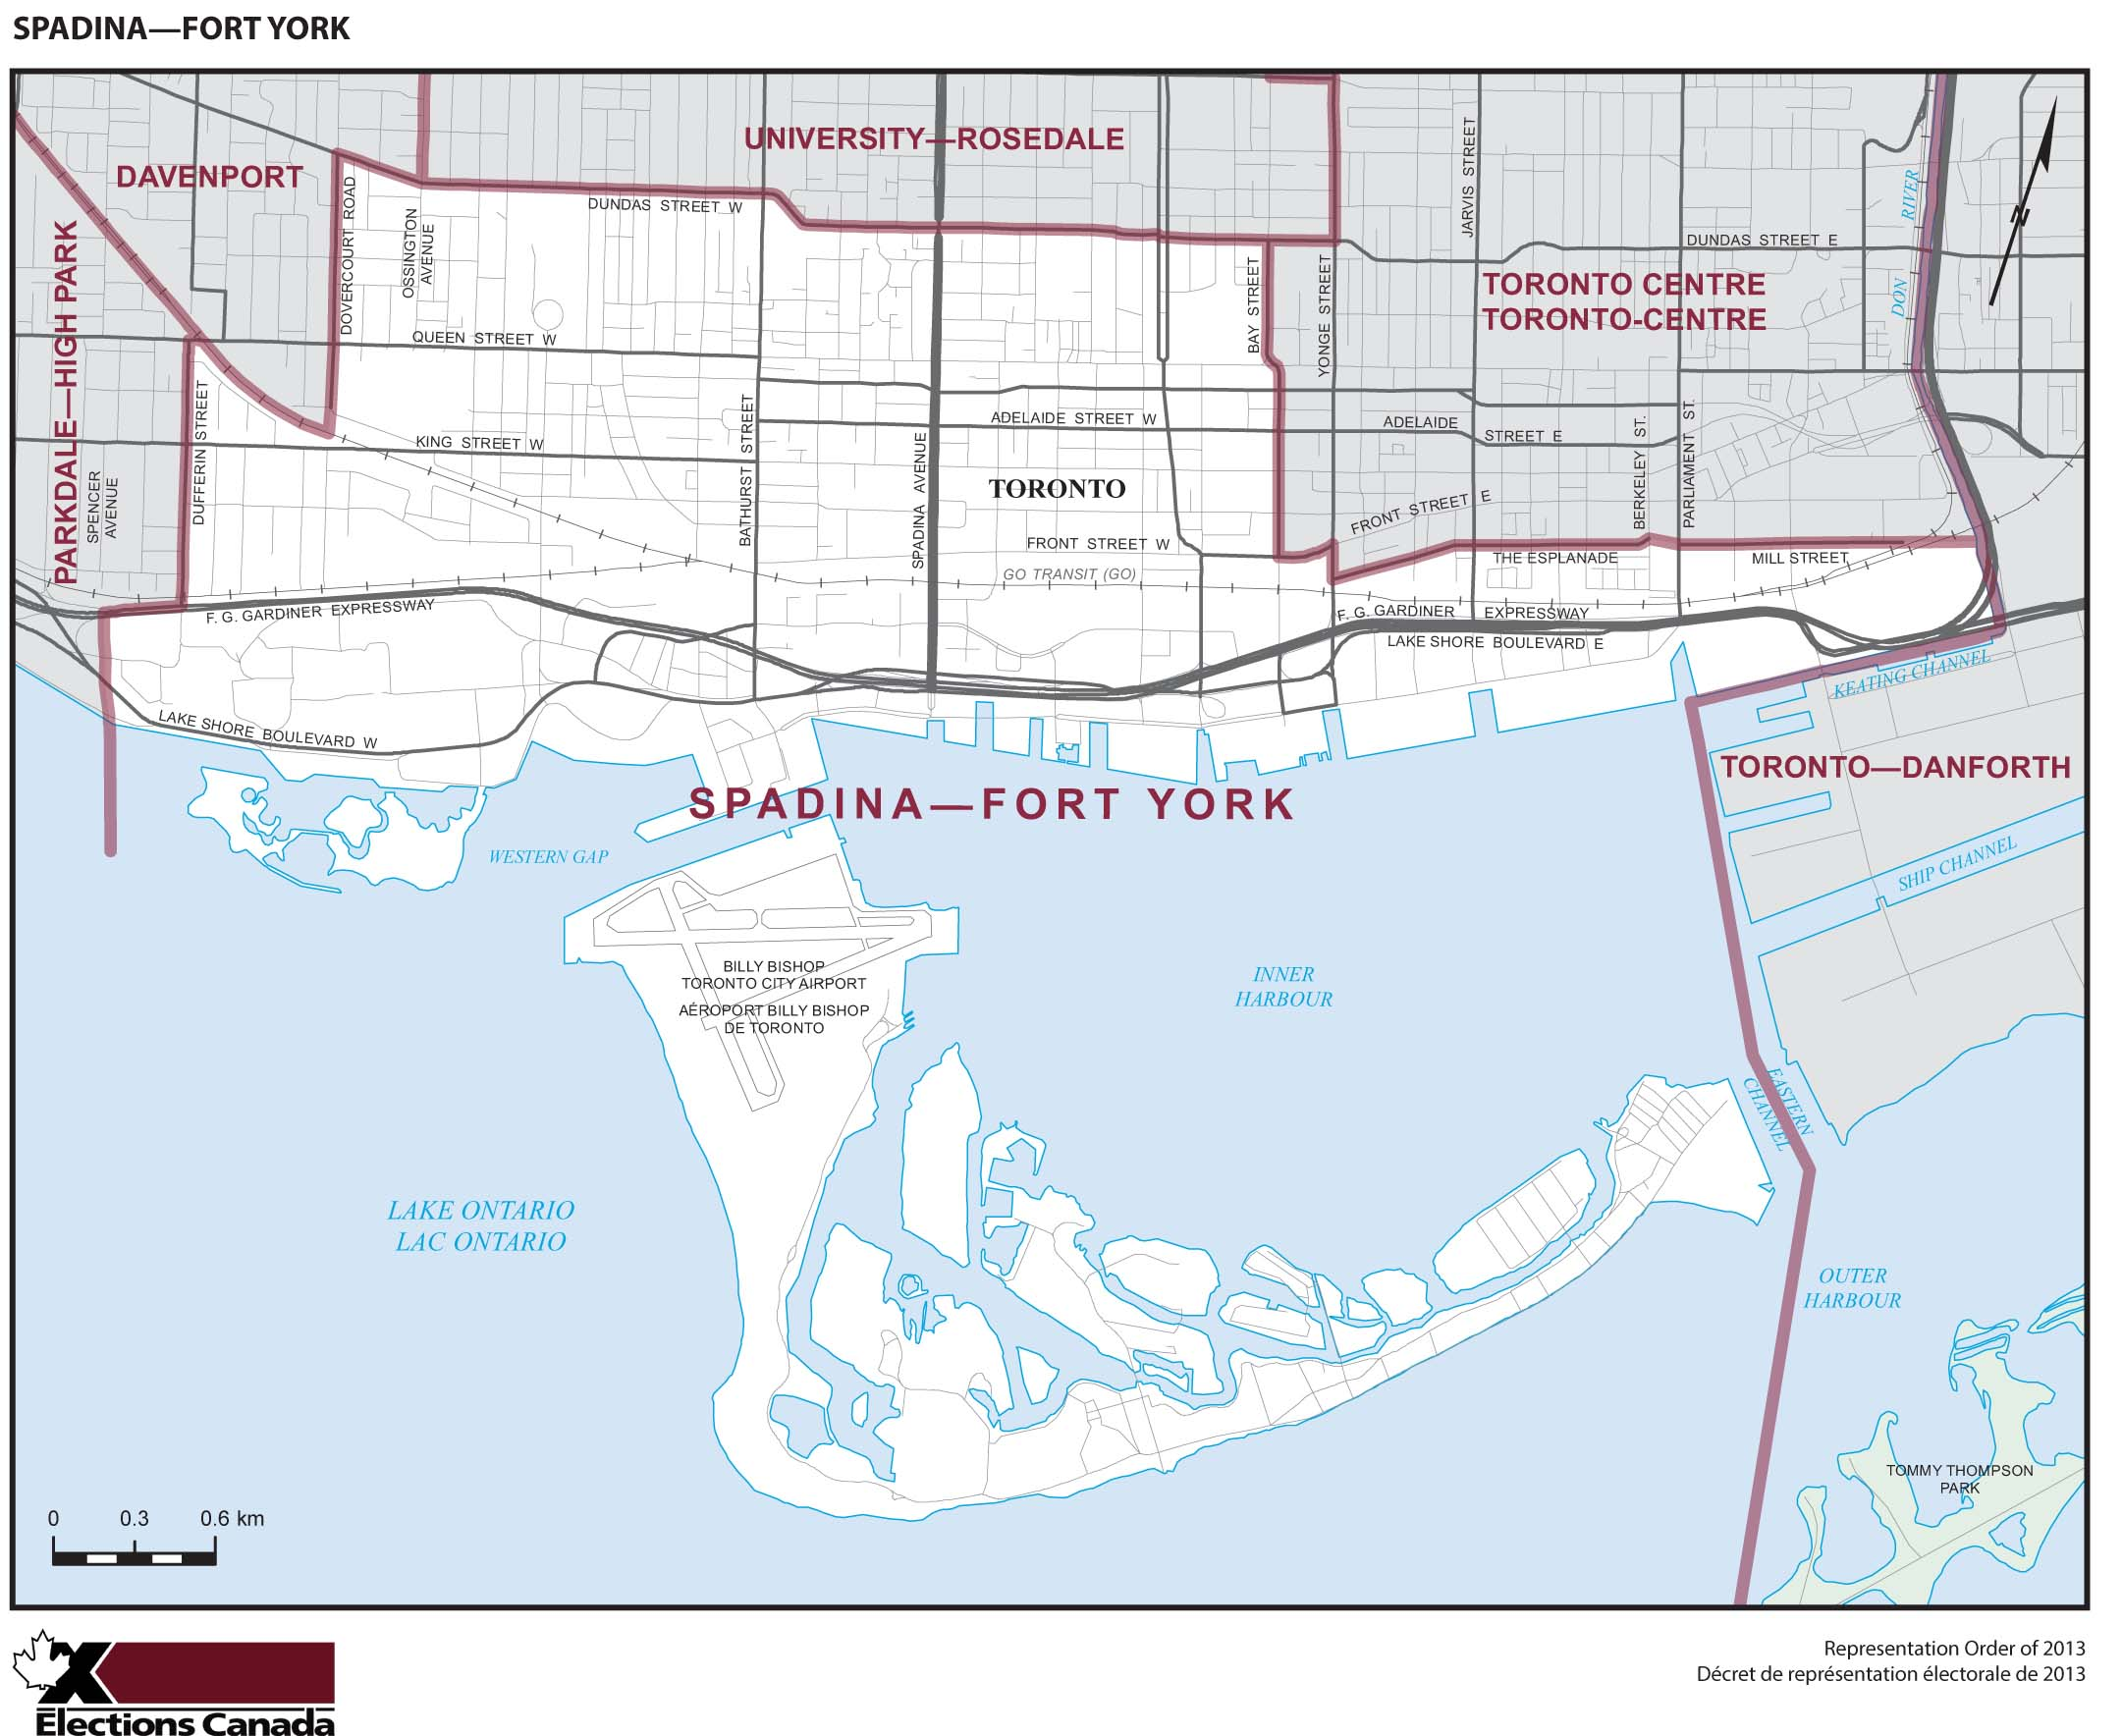 Map: Spadina--Fort York, Federal electoral district, 2013 Representation Order (in white), Ontario